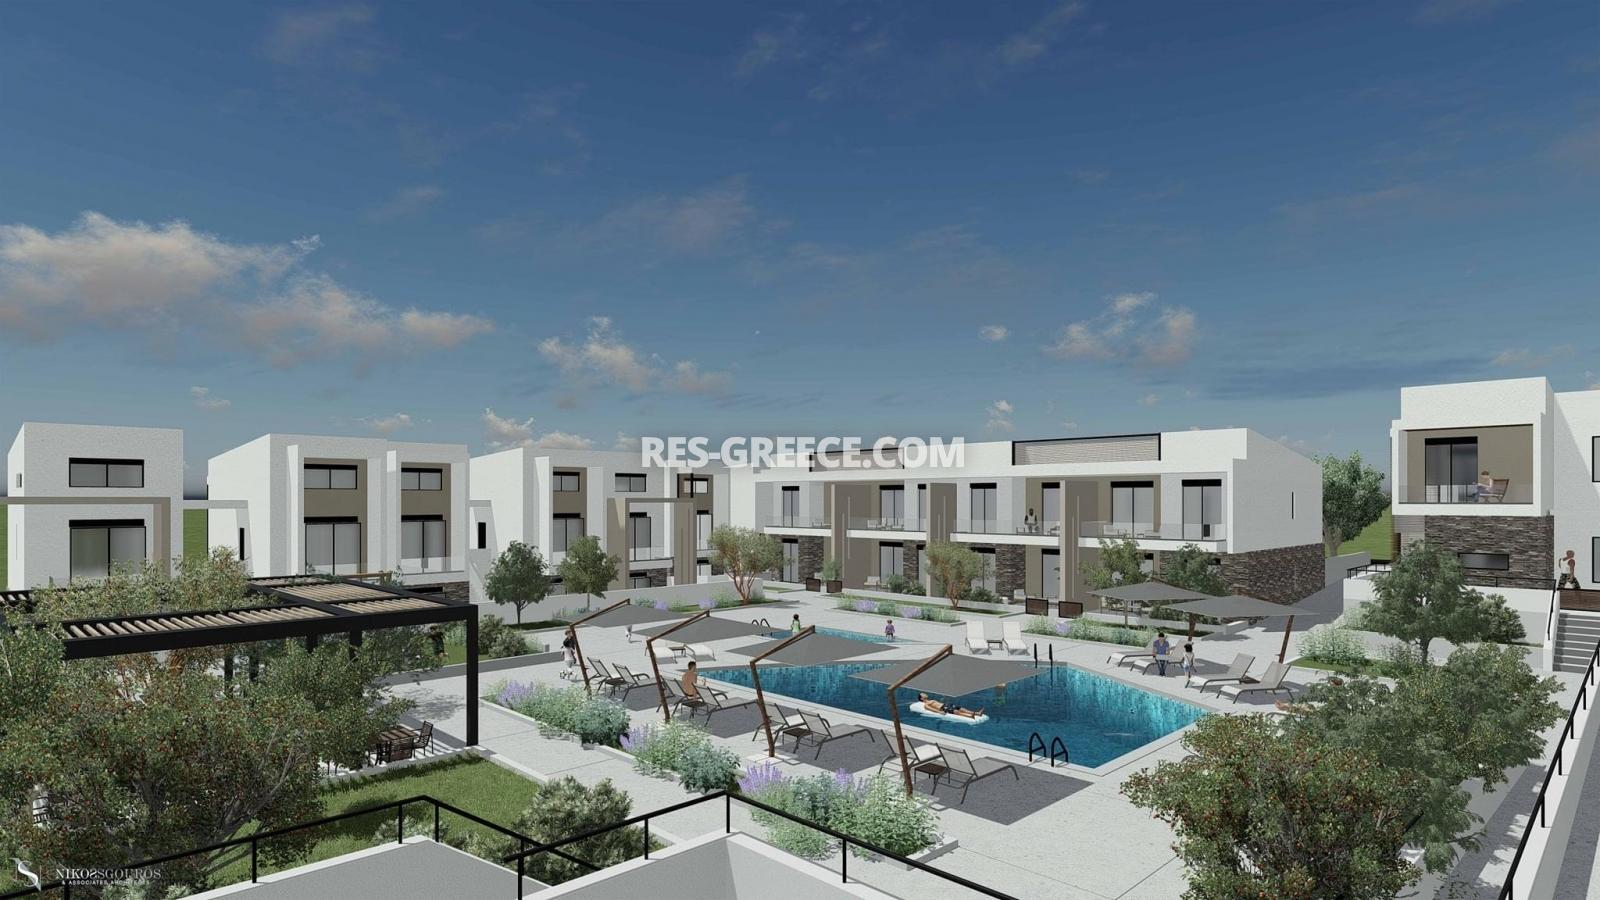 Anasa apartments, Halkidiki-Sithonia, Greece - apartments in a new complex with pool - Photo 4